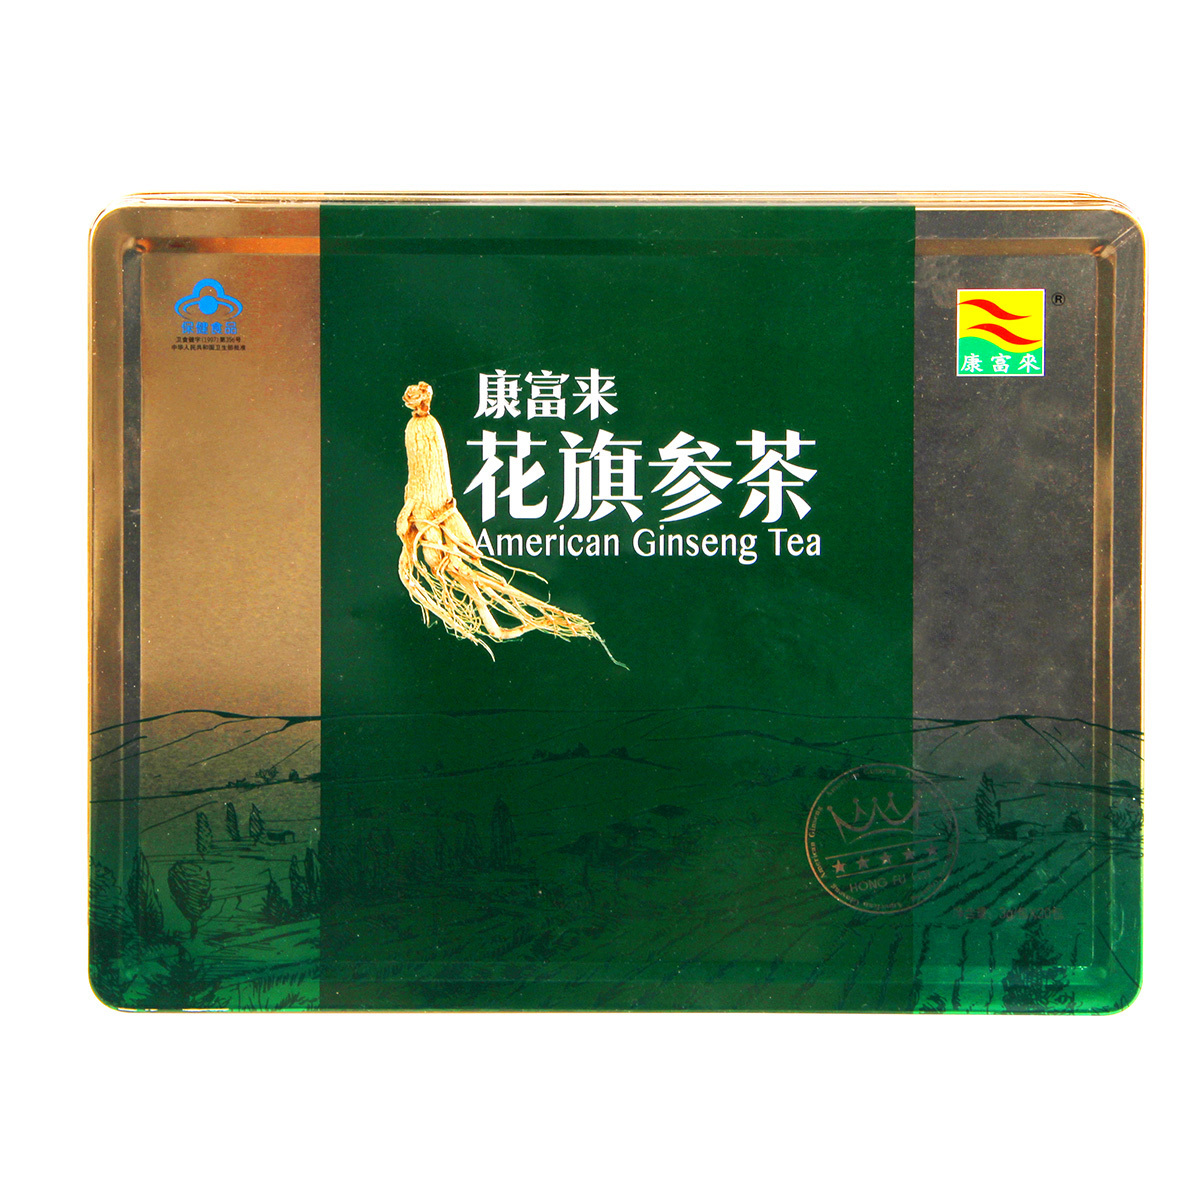 Kangfulai American ginseng tea 3G / pack * 30 packs of elderly health care products gifts for elderly men and women